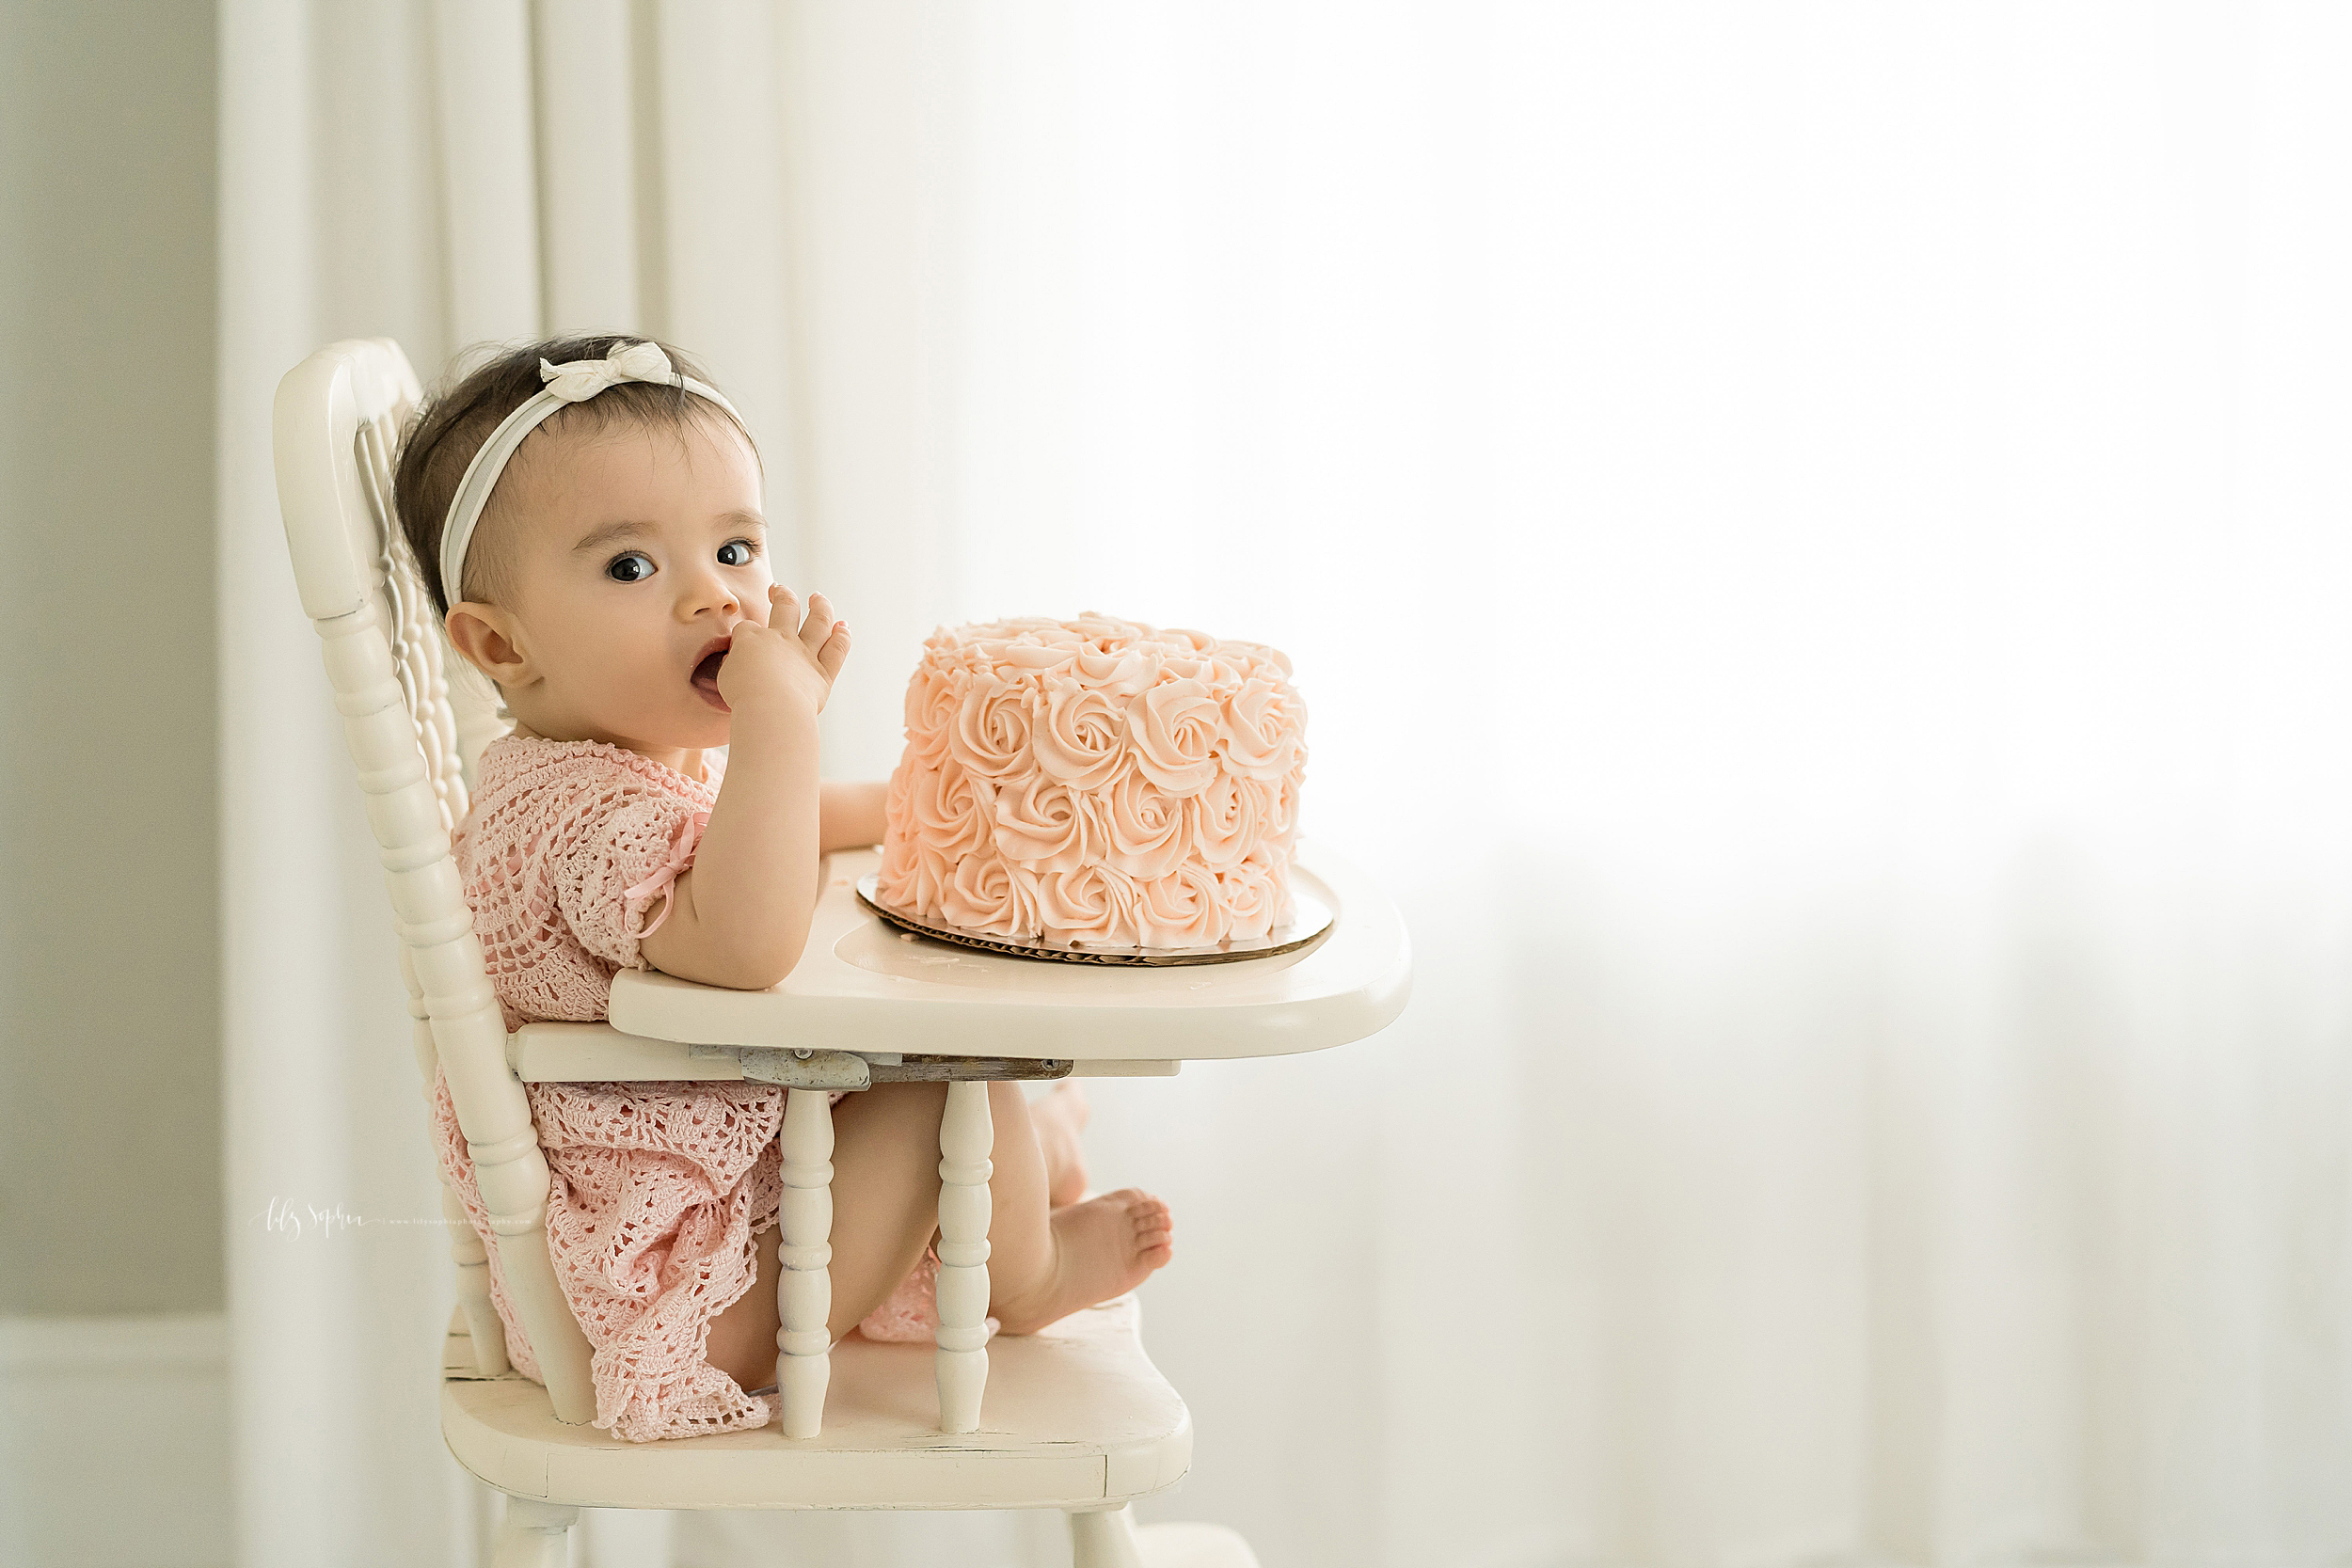 Image of an Asian one year old girl  in a cream wooden high chair.  The little girl is wearing a pastel pink headband with the bow and a crocheted dress.  She has her right hand in her mouth tasting the frosting of the pink rose covered smash cake.  The smash cake sits on the tray of the high chair.